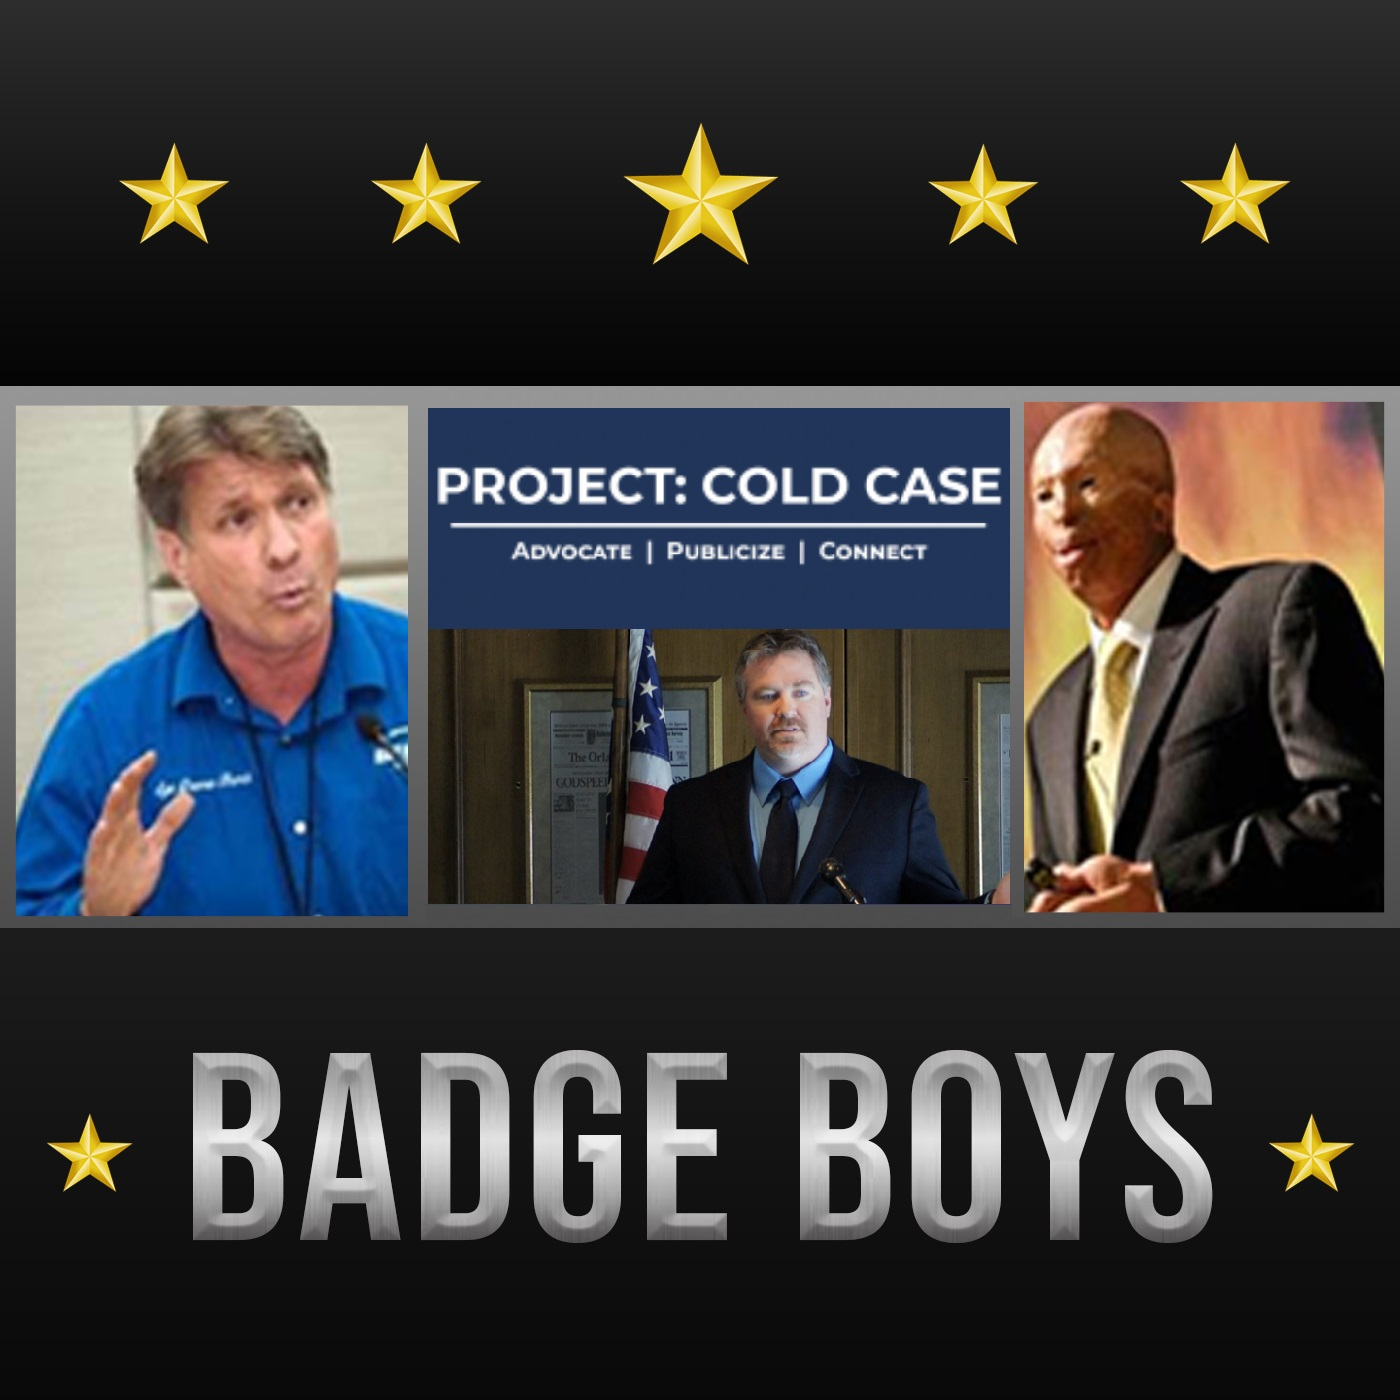 From grieving his father's unsolved murder to giving other families hope of justice with Project Cold Case